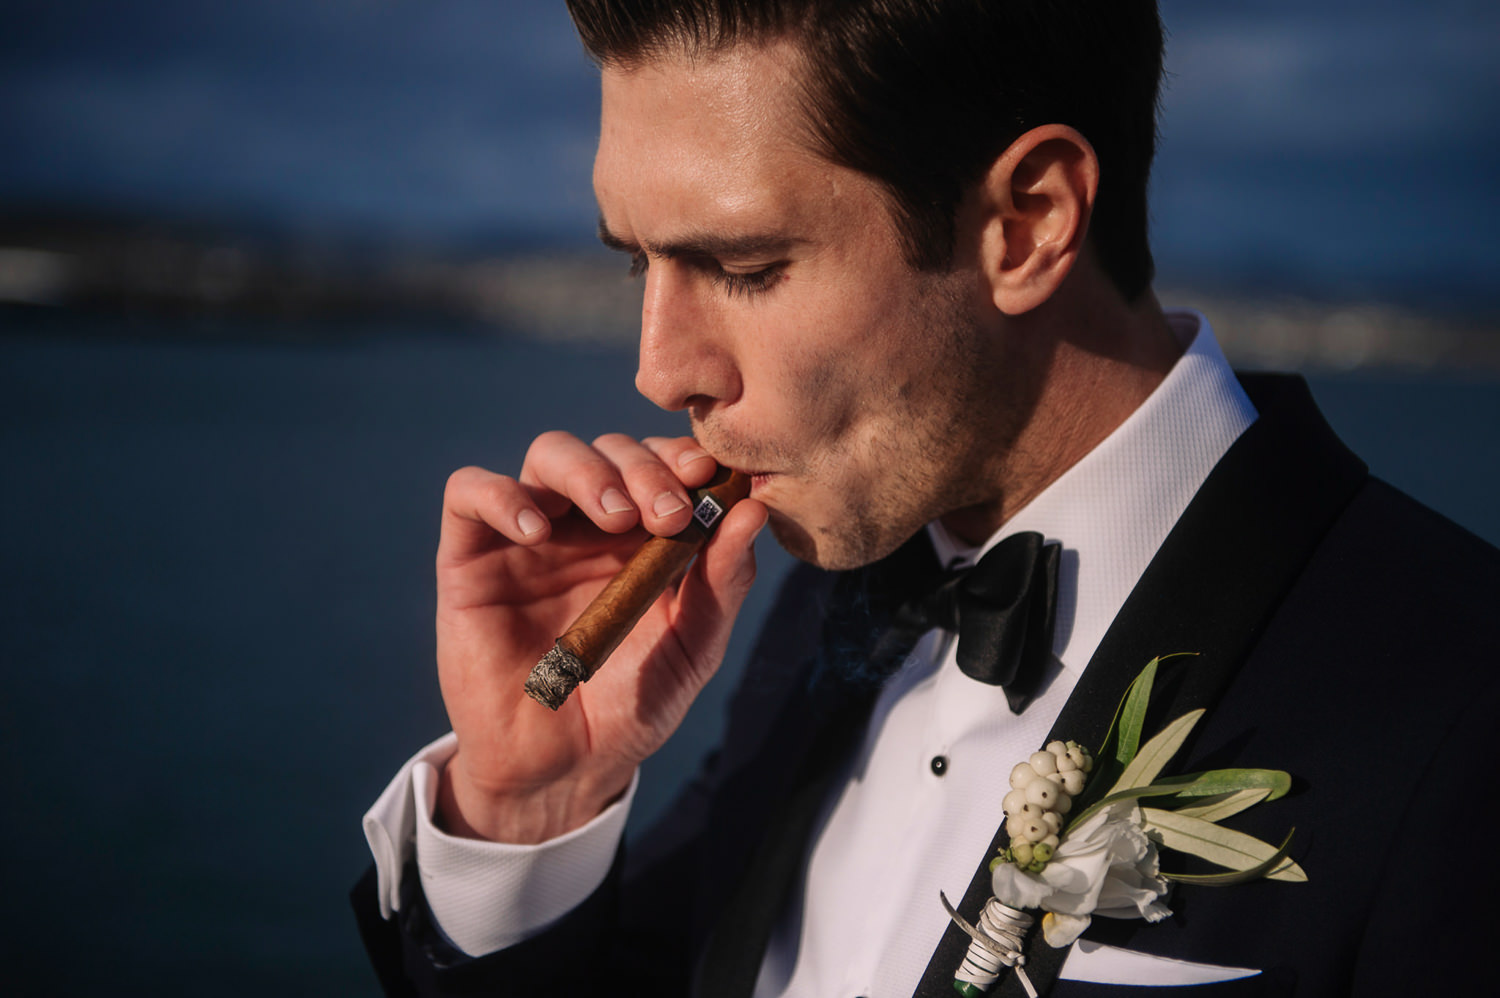 Groom_with_Cigar